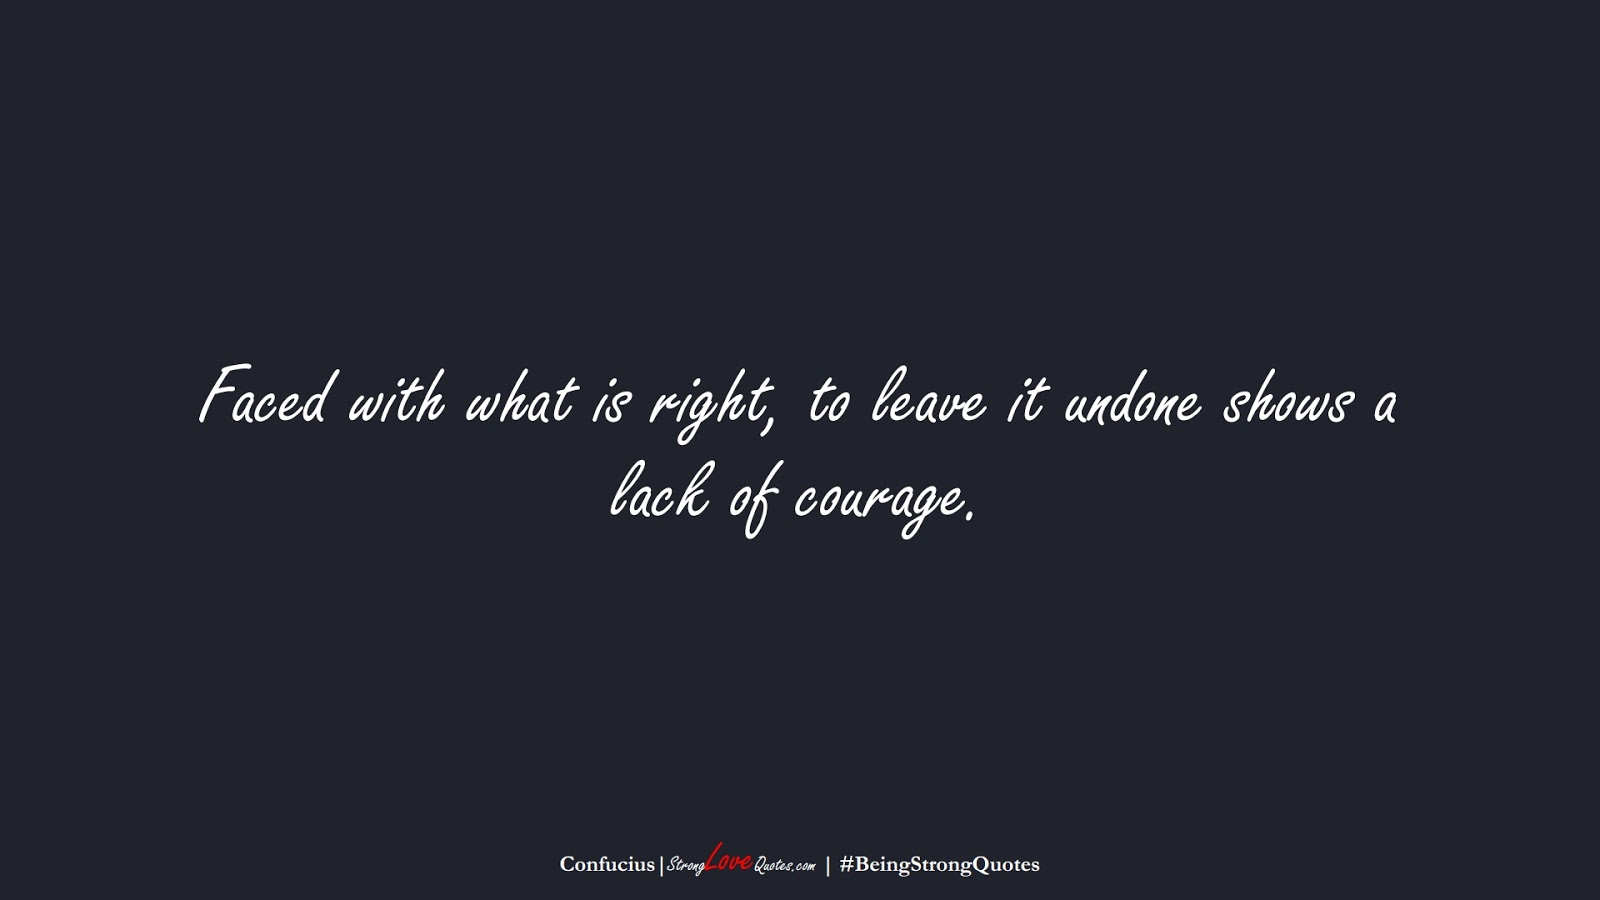 Faced with what is right, to leave it undone shows a lack of courage. (Confucius);  #BeingStrongQuotes